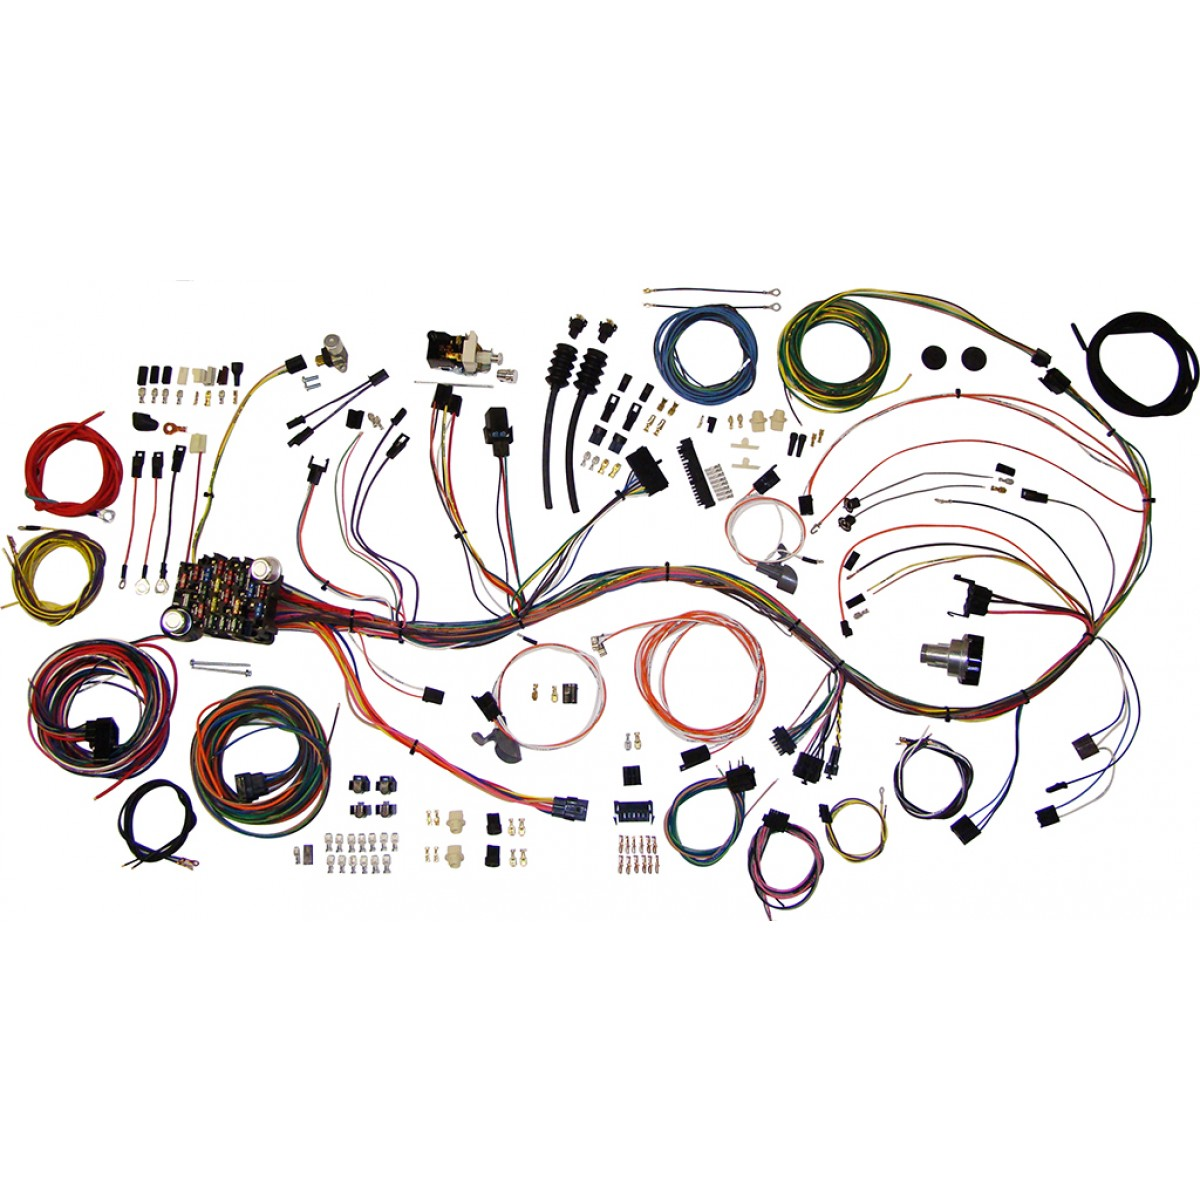 complete wiring harness kit 1969 1972 chevy truck part 510089 c10 c20 wire harness 1972 american auto wire code 510 wiring harness factory fitting Wire Harness Assembly at reclaimingppi.co